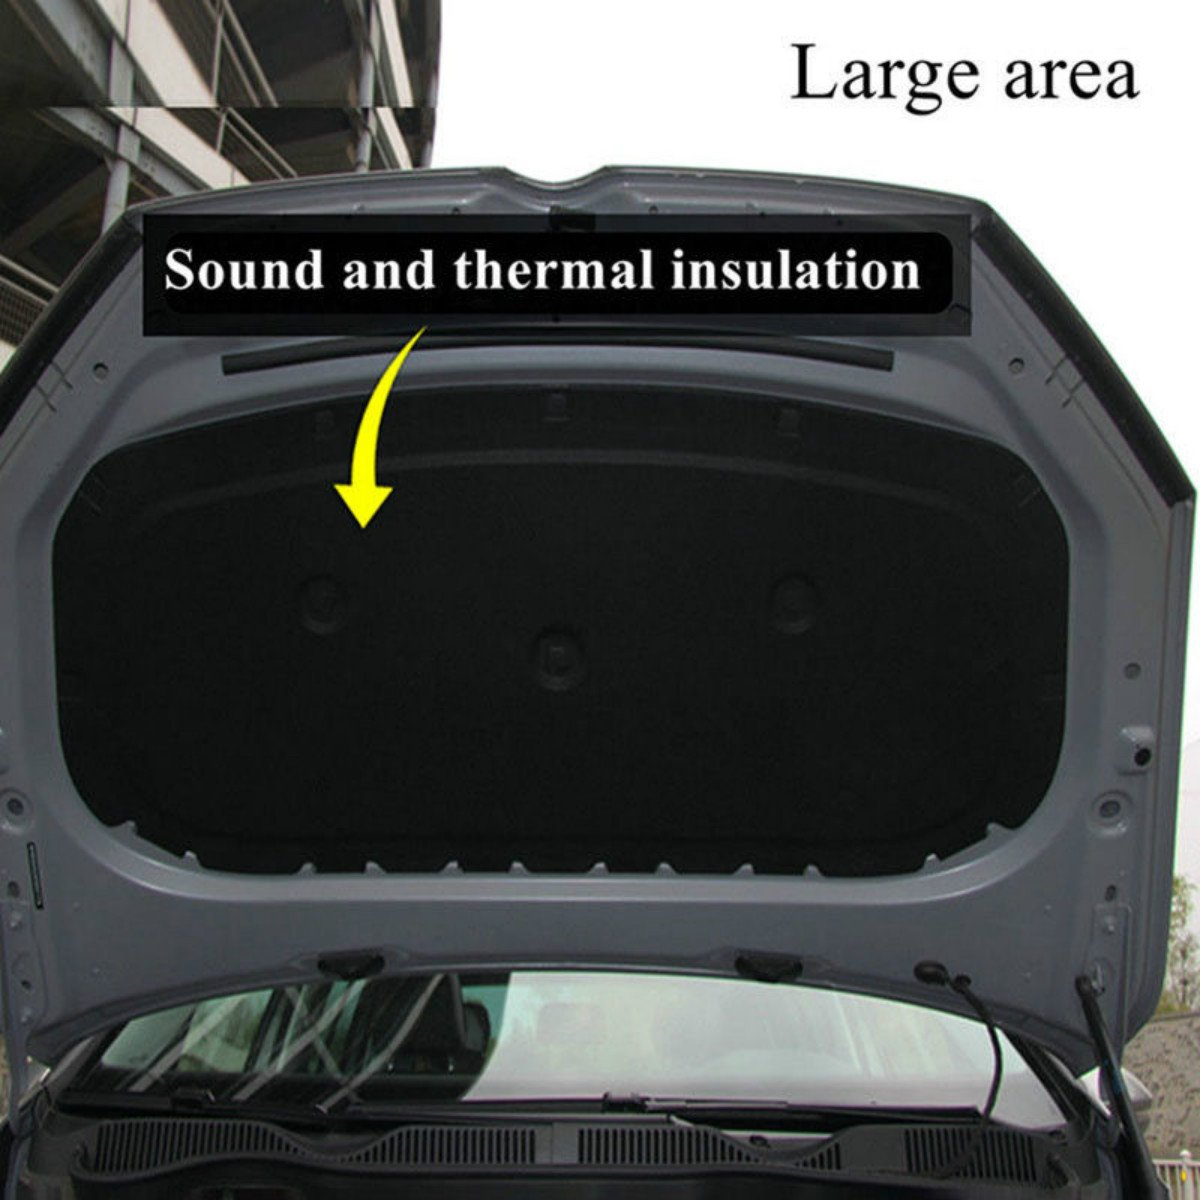 Jeteven 1m x 50cm High Density Foam Rubber Padding Roll Self Closed Cell Foam Waterproof Soundproof Insulation Thermal Foam Car Sound Deadening Mat 1m by Jeteven (Image #4)